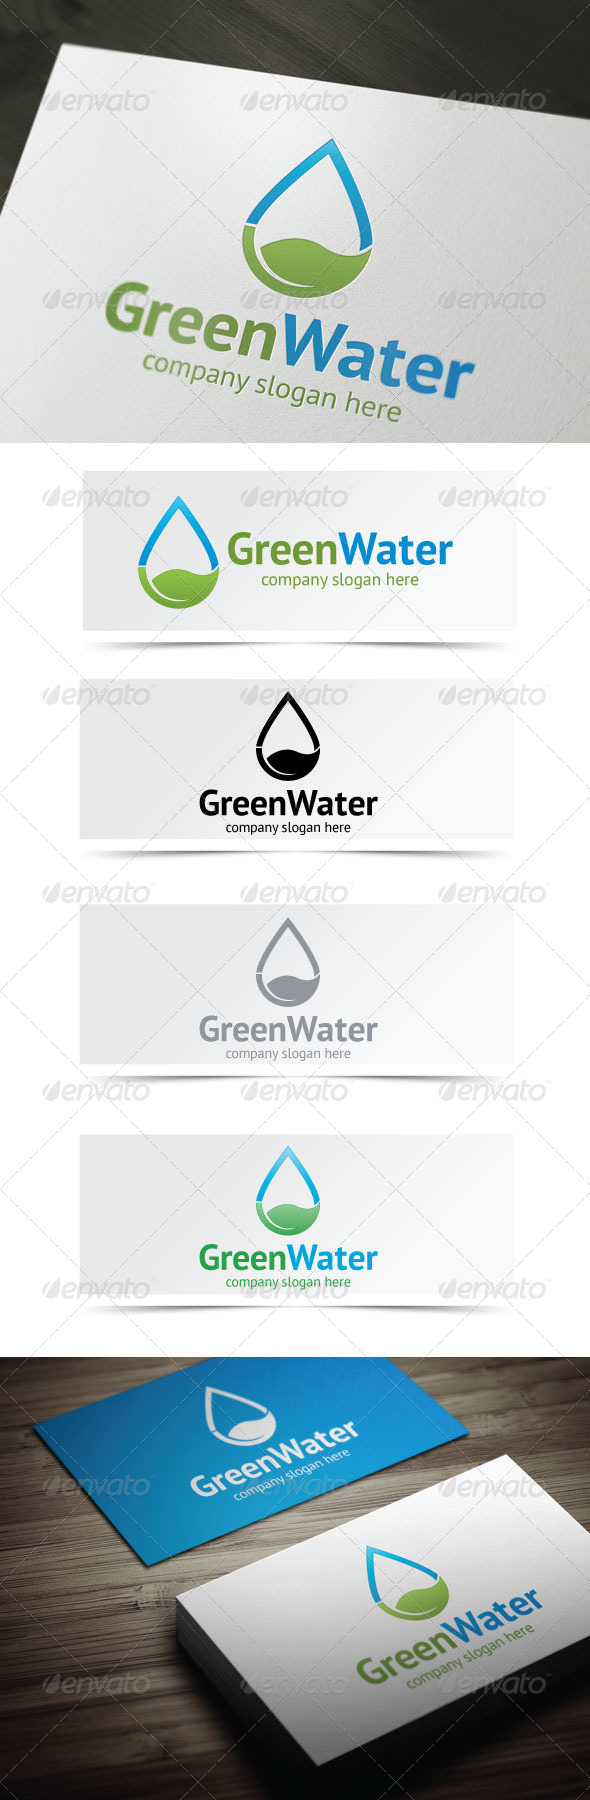 GraphicRiver Green Water 4245679